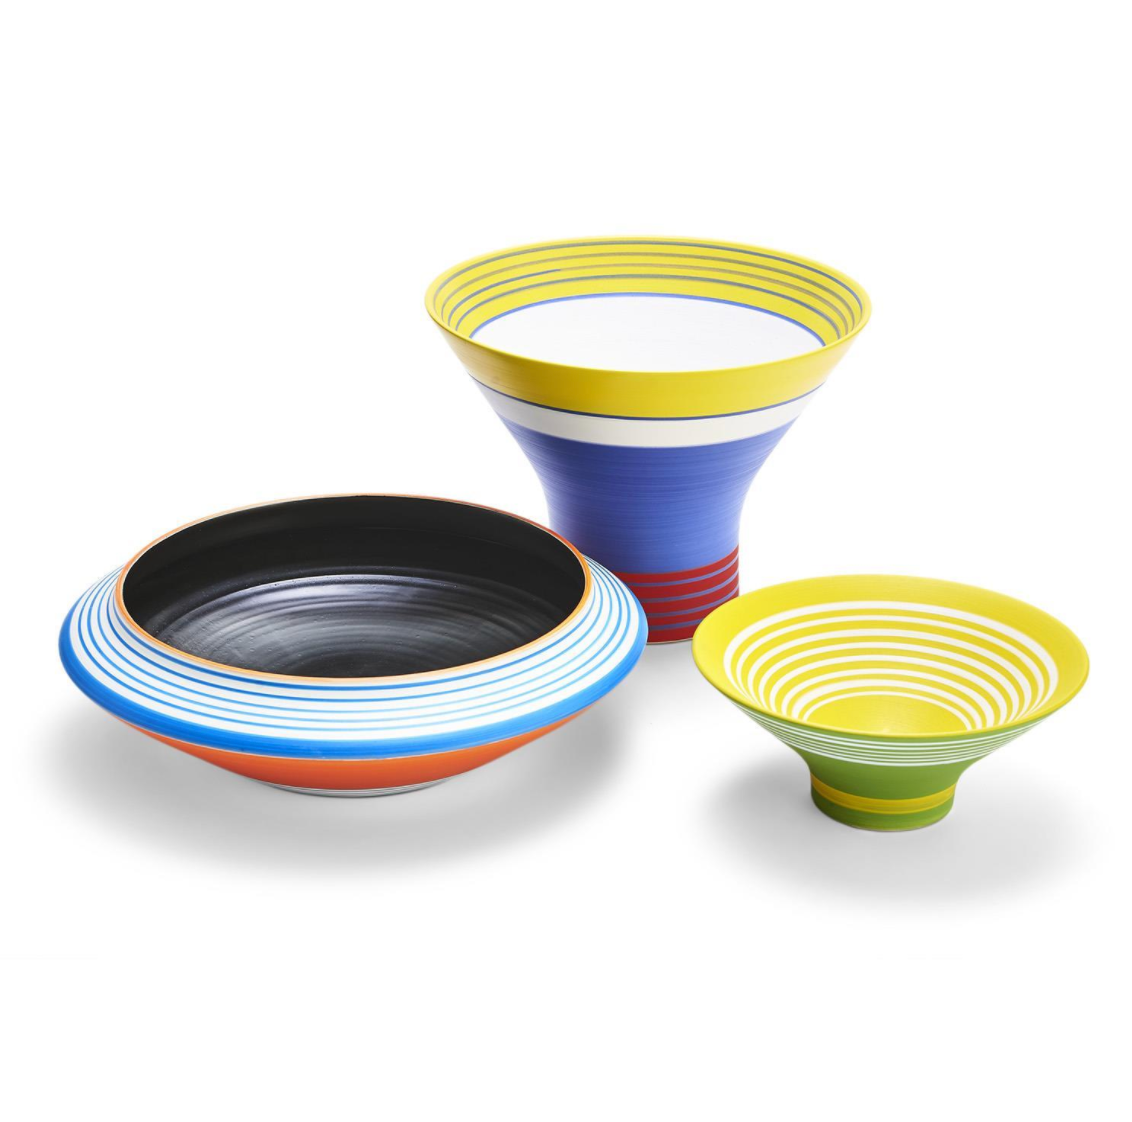 Ibiza Striped Colored Decorative Bowls